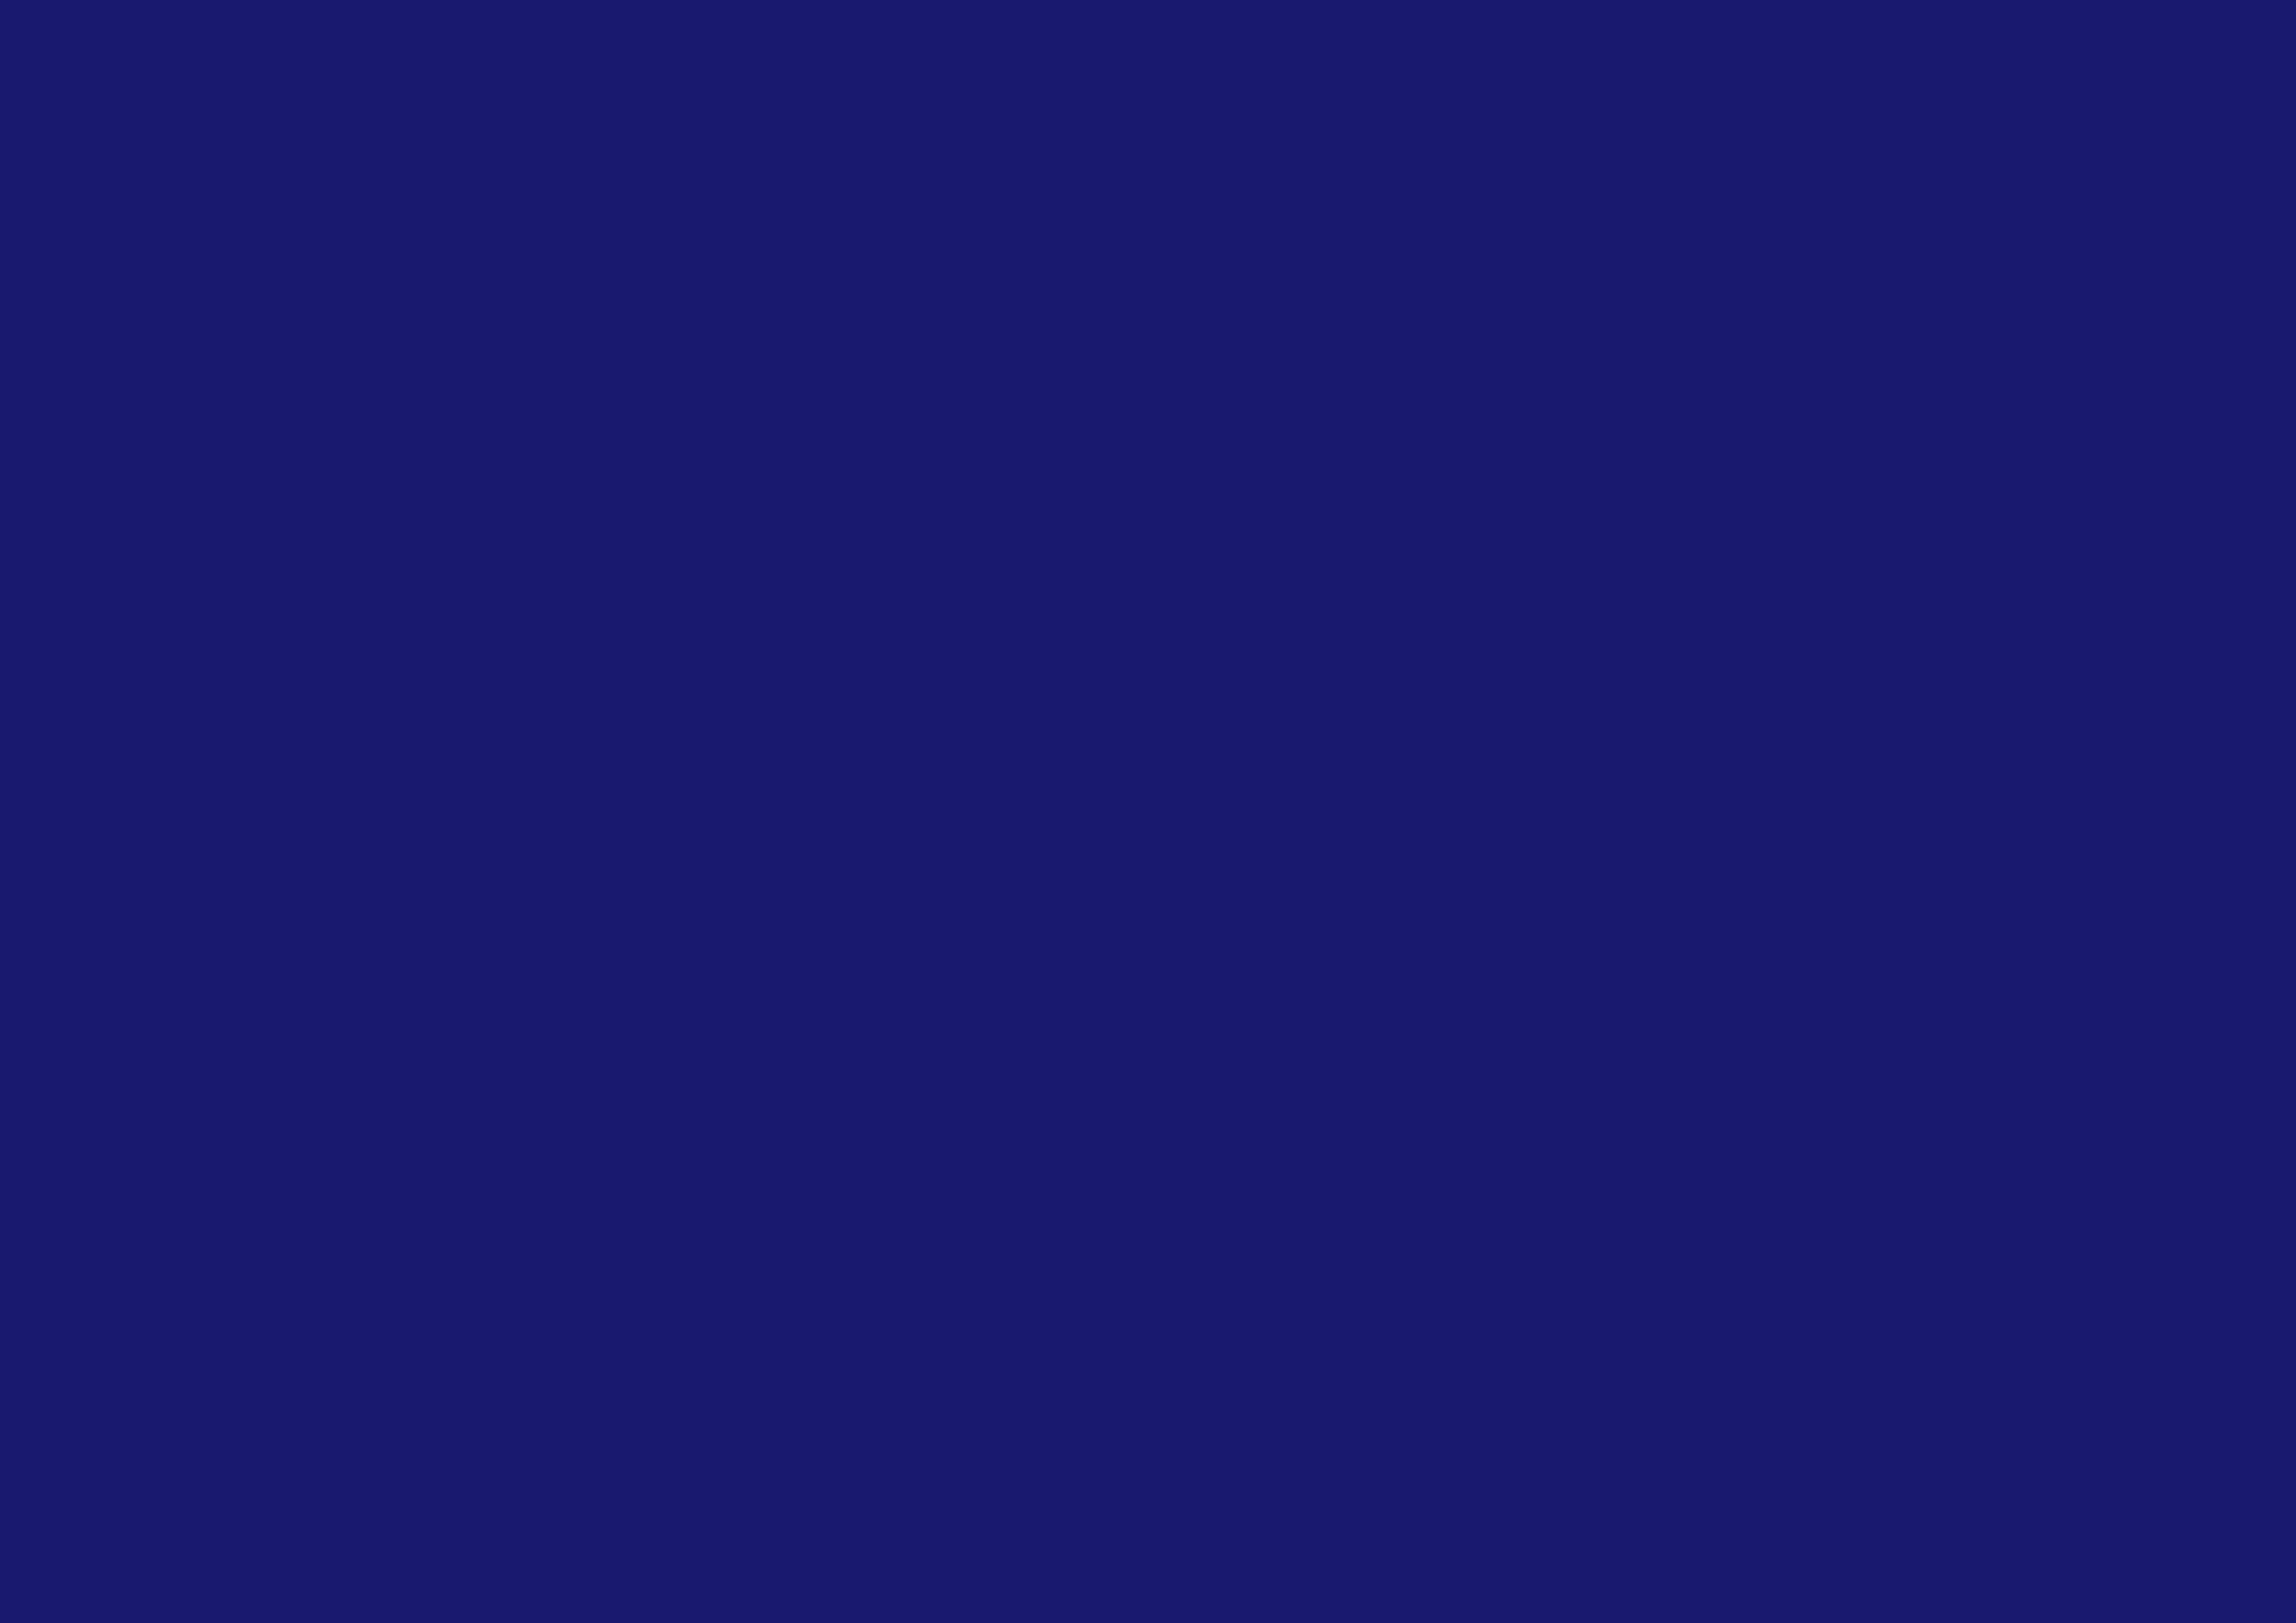 3508x2480 Midnight Blue Solid Color Background